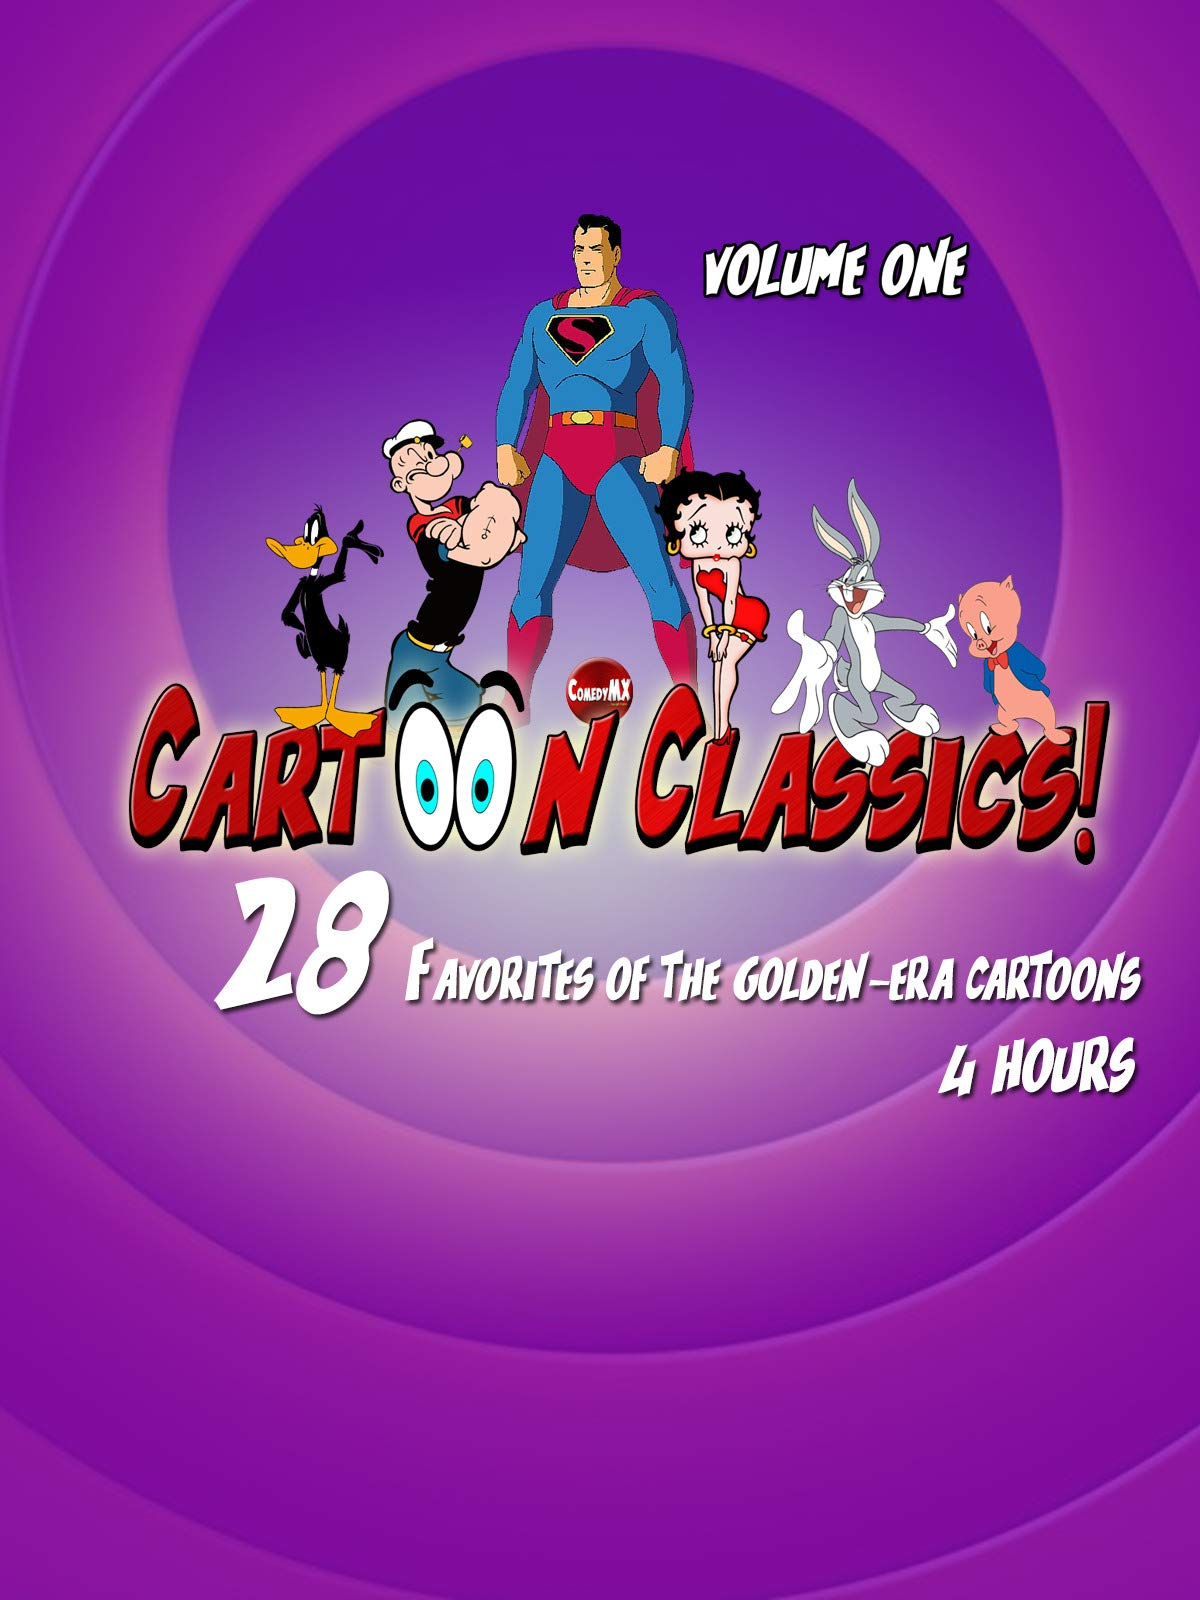 Cartoon Classics - 28 Favorites of The Golden-Era Cartoons - Vol 1: 4 Hours